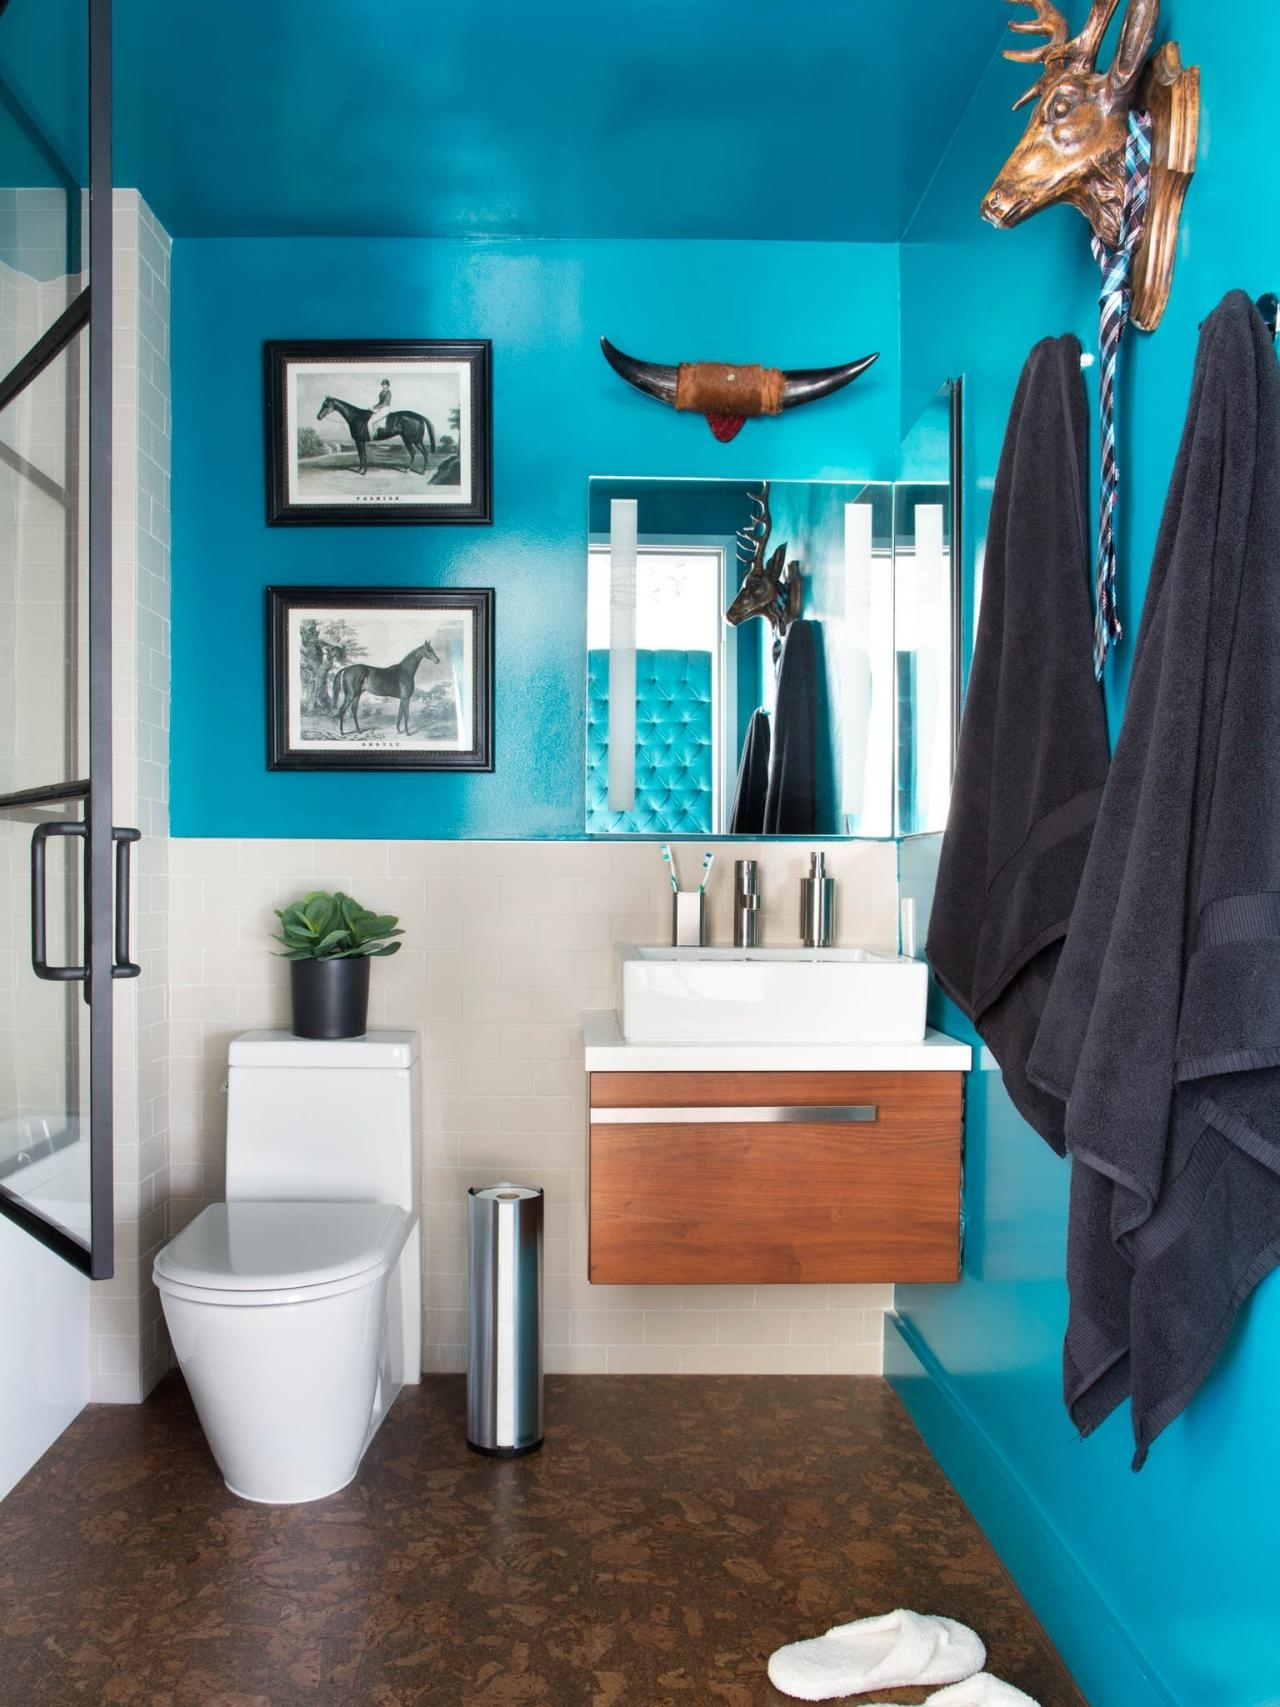 10 Famous Bathroom Color Ideas For Small Bathrooms %name 2020